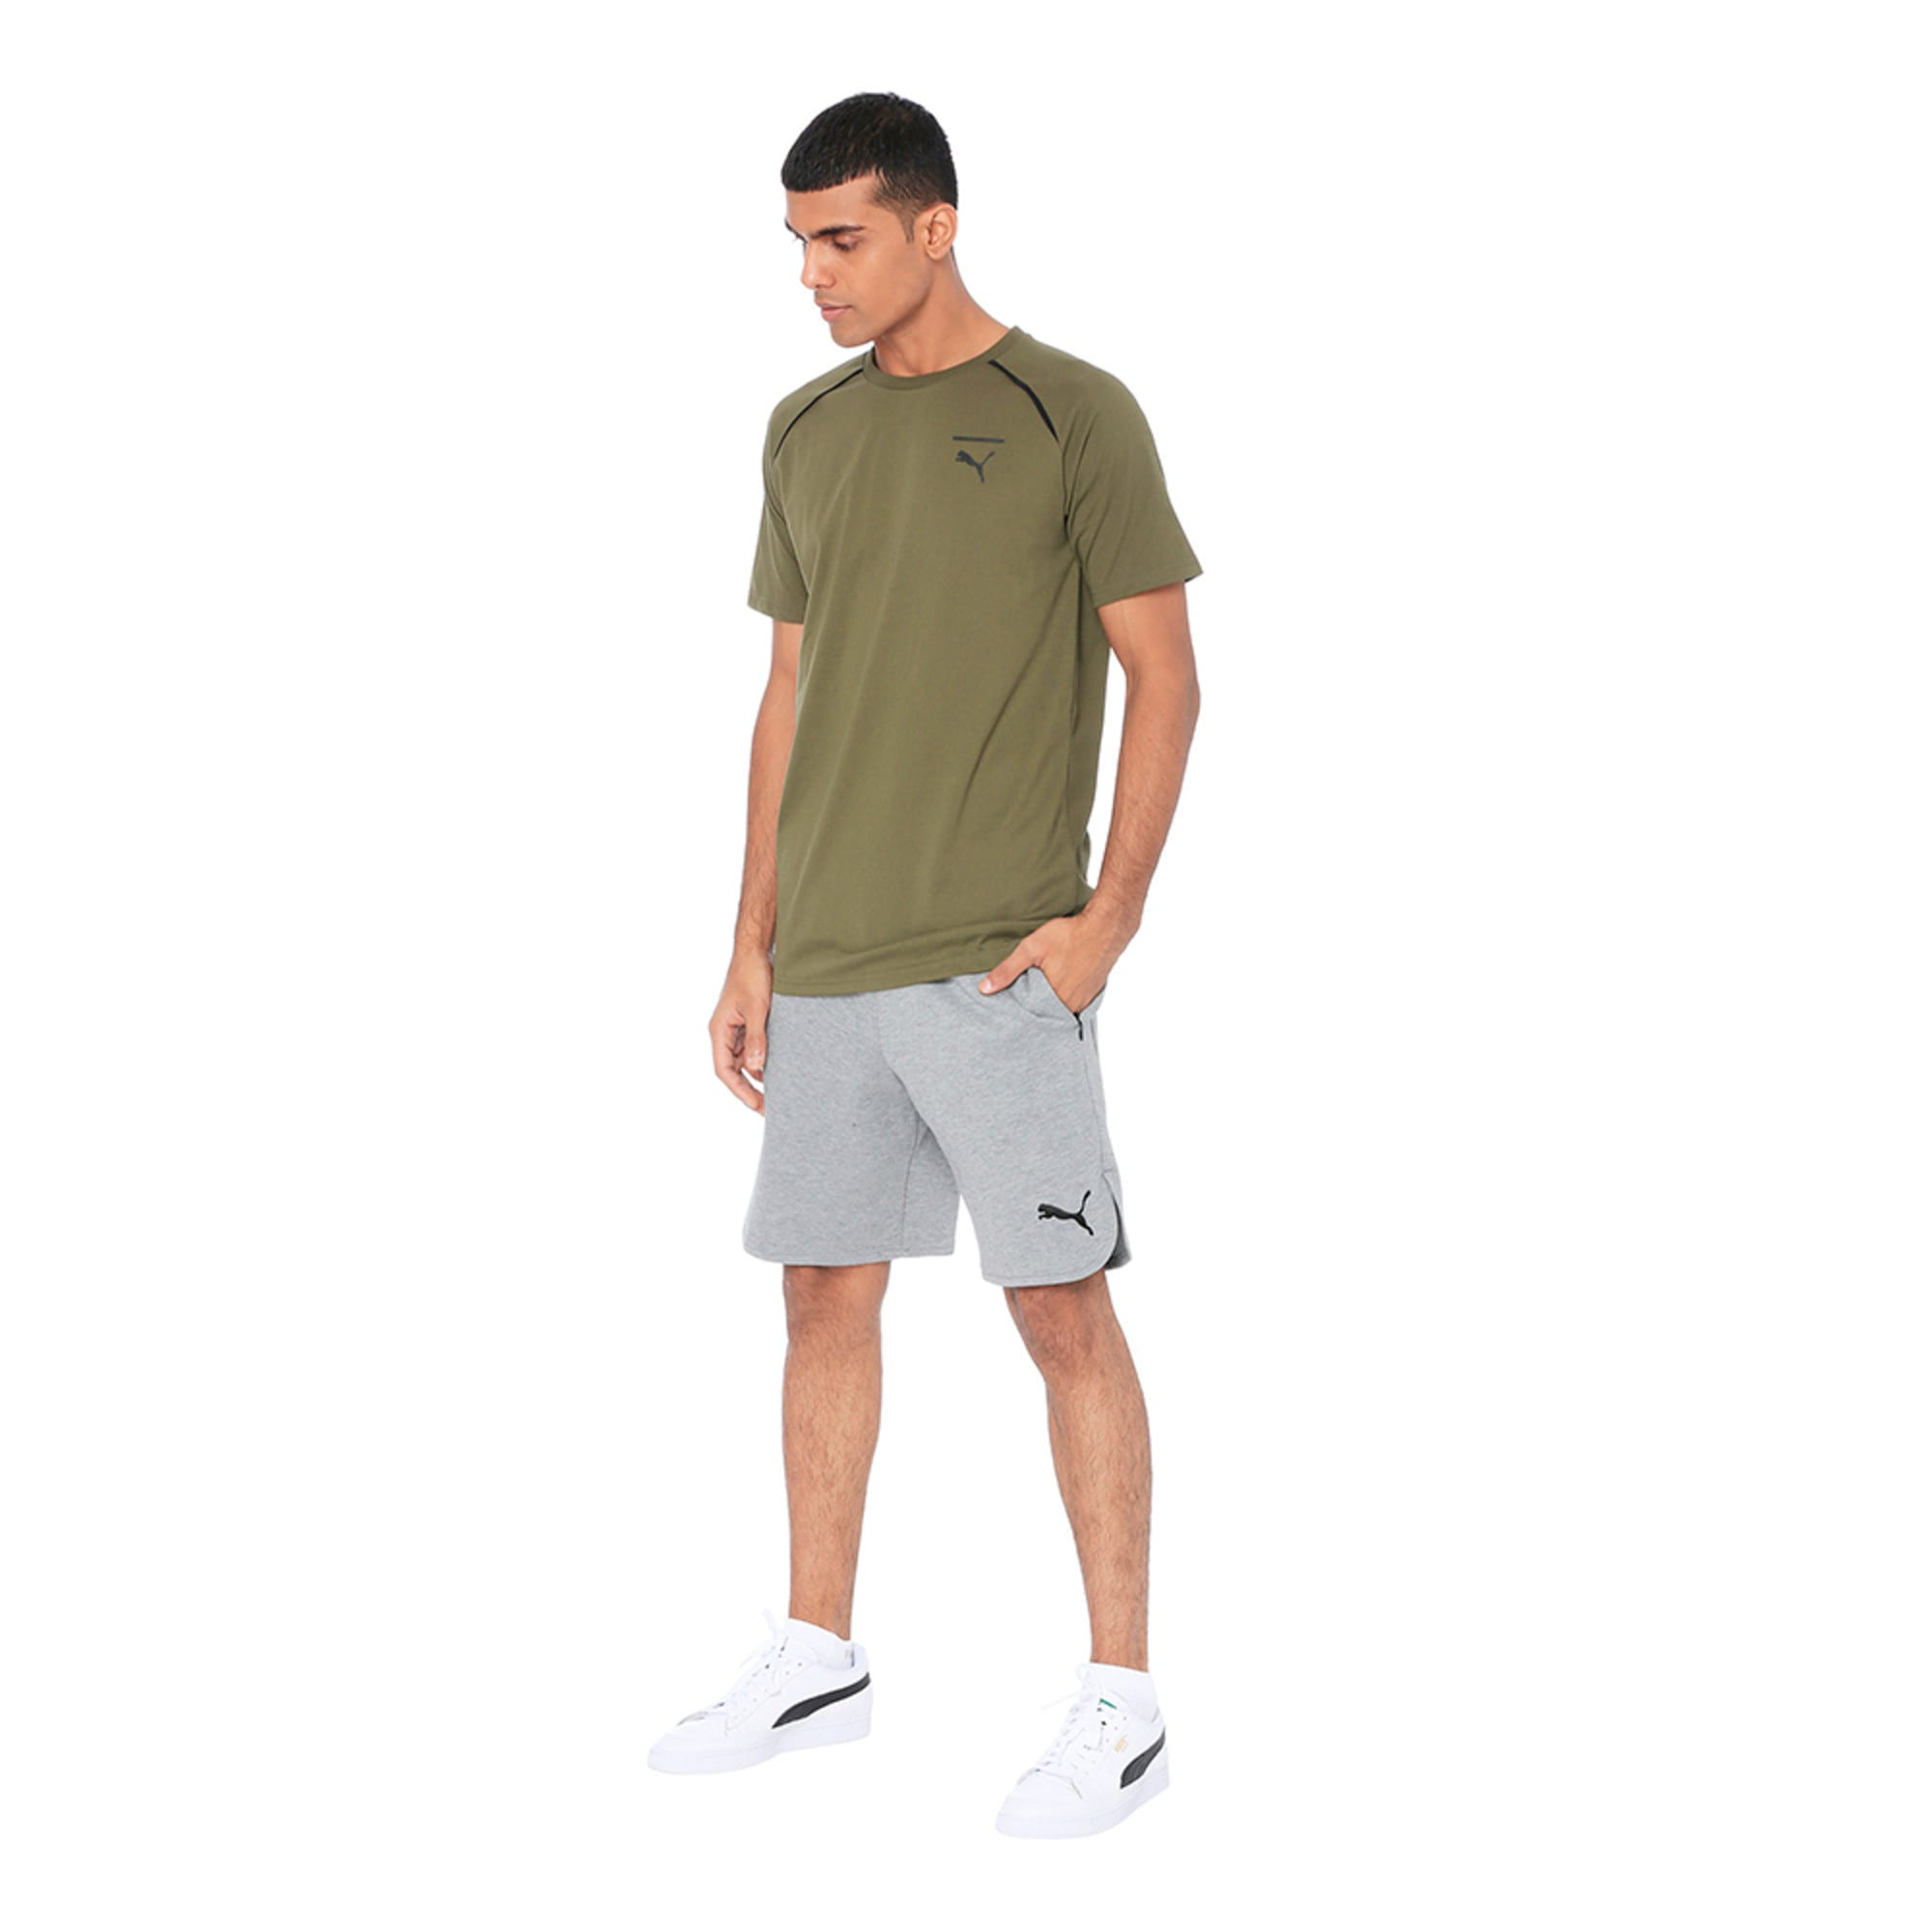 Thumbnail 3 of Evolution Men's Core T-Shirt, Olive Night, medium-IND